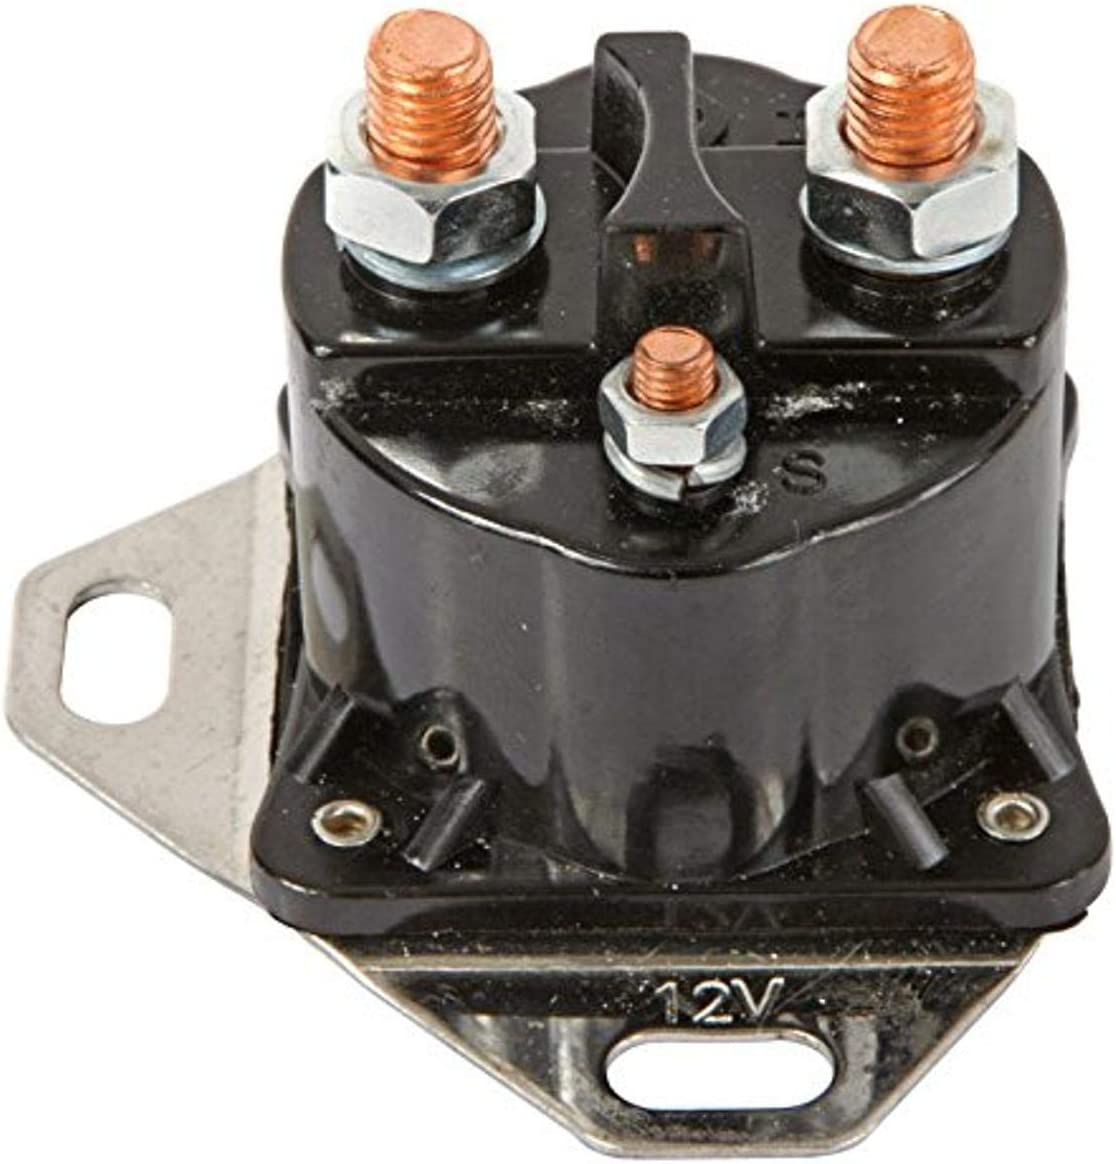 DB Electrical SMR6006 OMC Marine Solenoid Compatible with/Replacement for985063, 18-5812, 18-5813, SAZ4201DDY